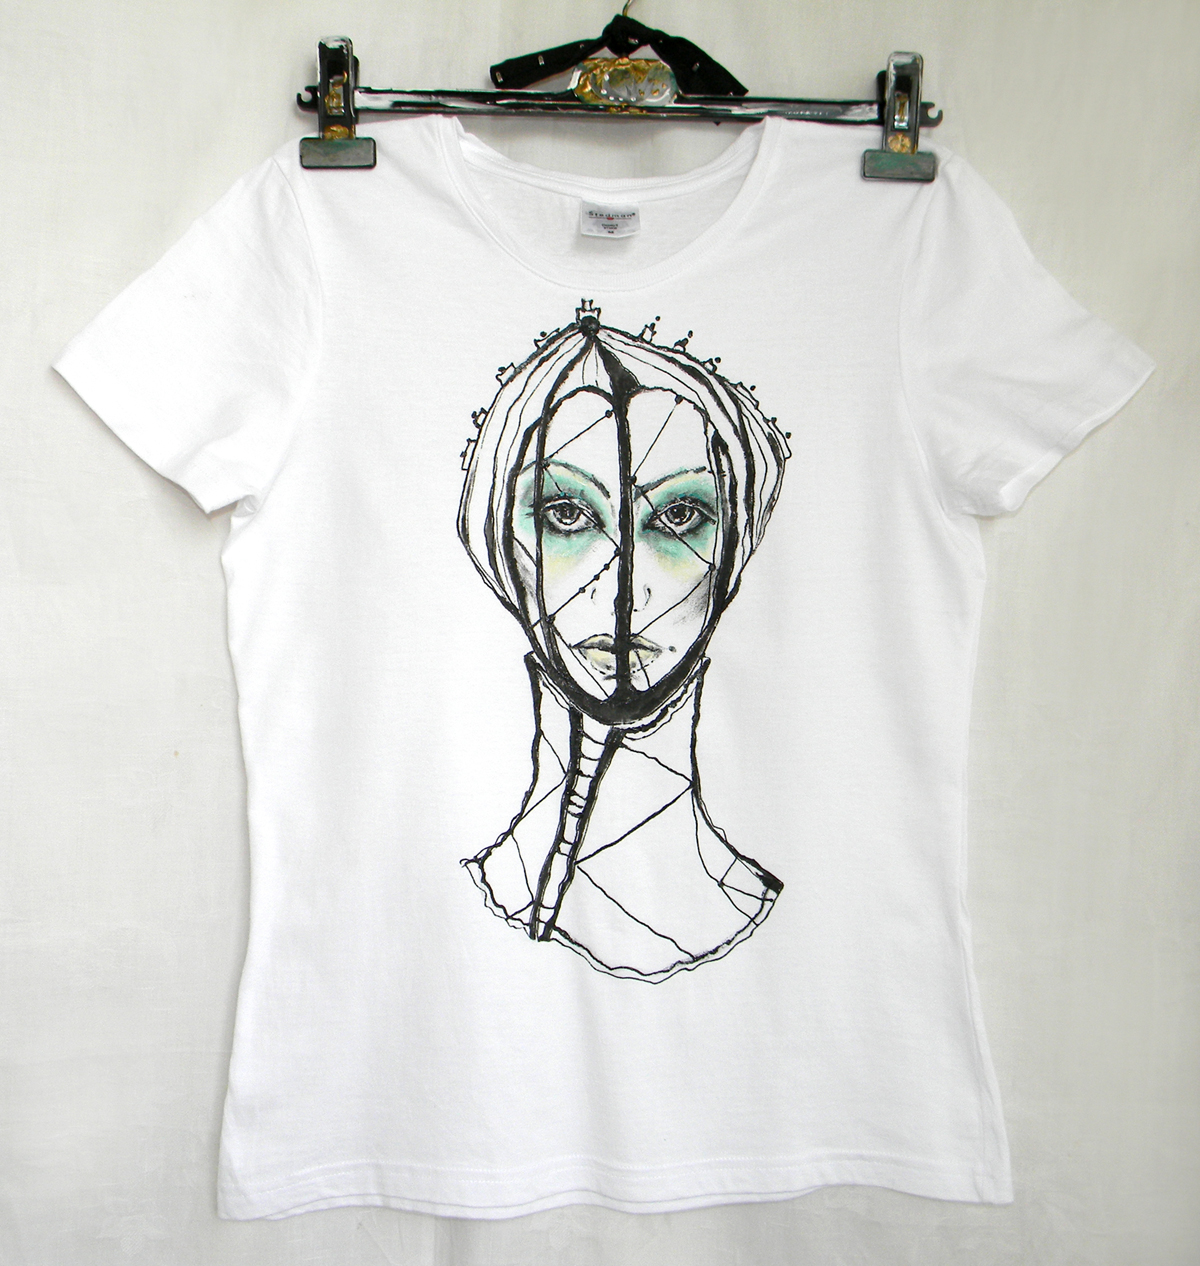 M size-Hand Painted Women Tshirt with Original Goth Portrait on White Knit Cotton in Black and Mint